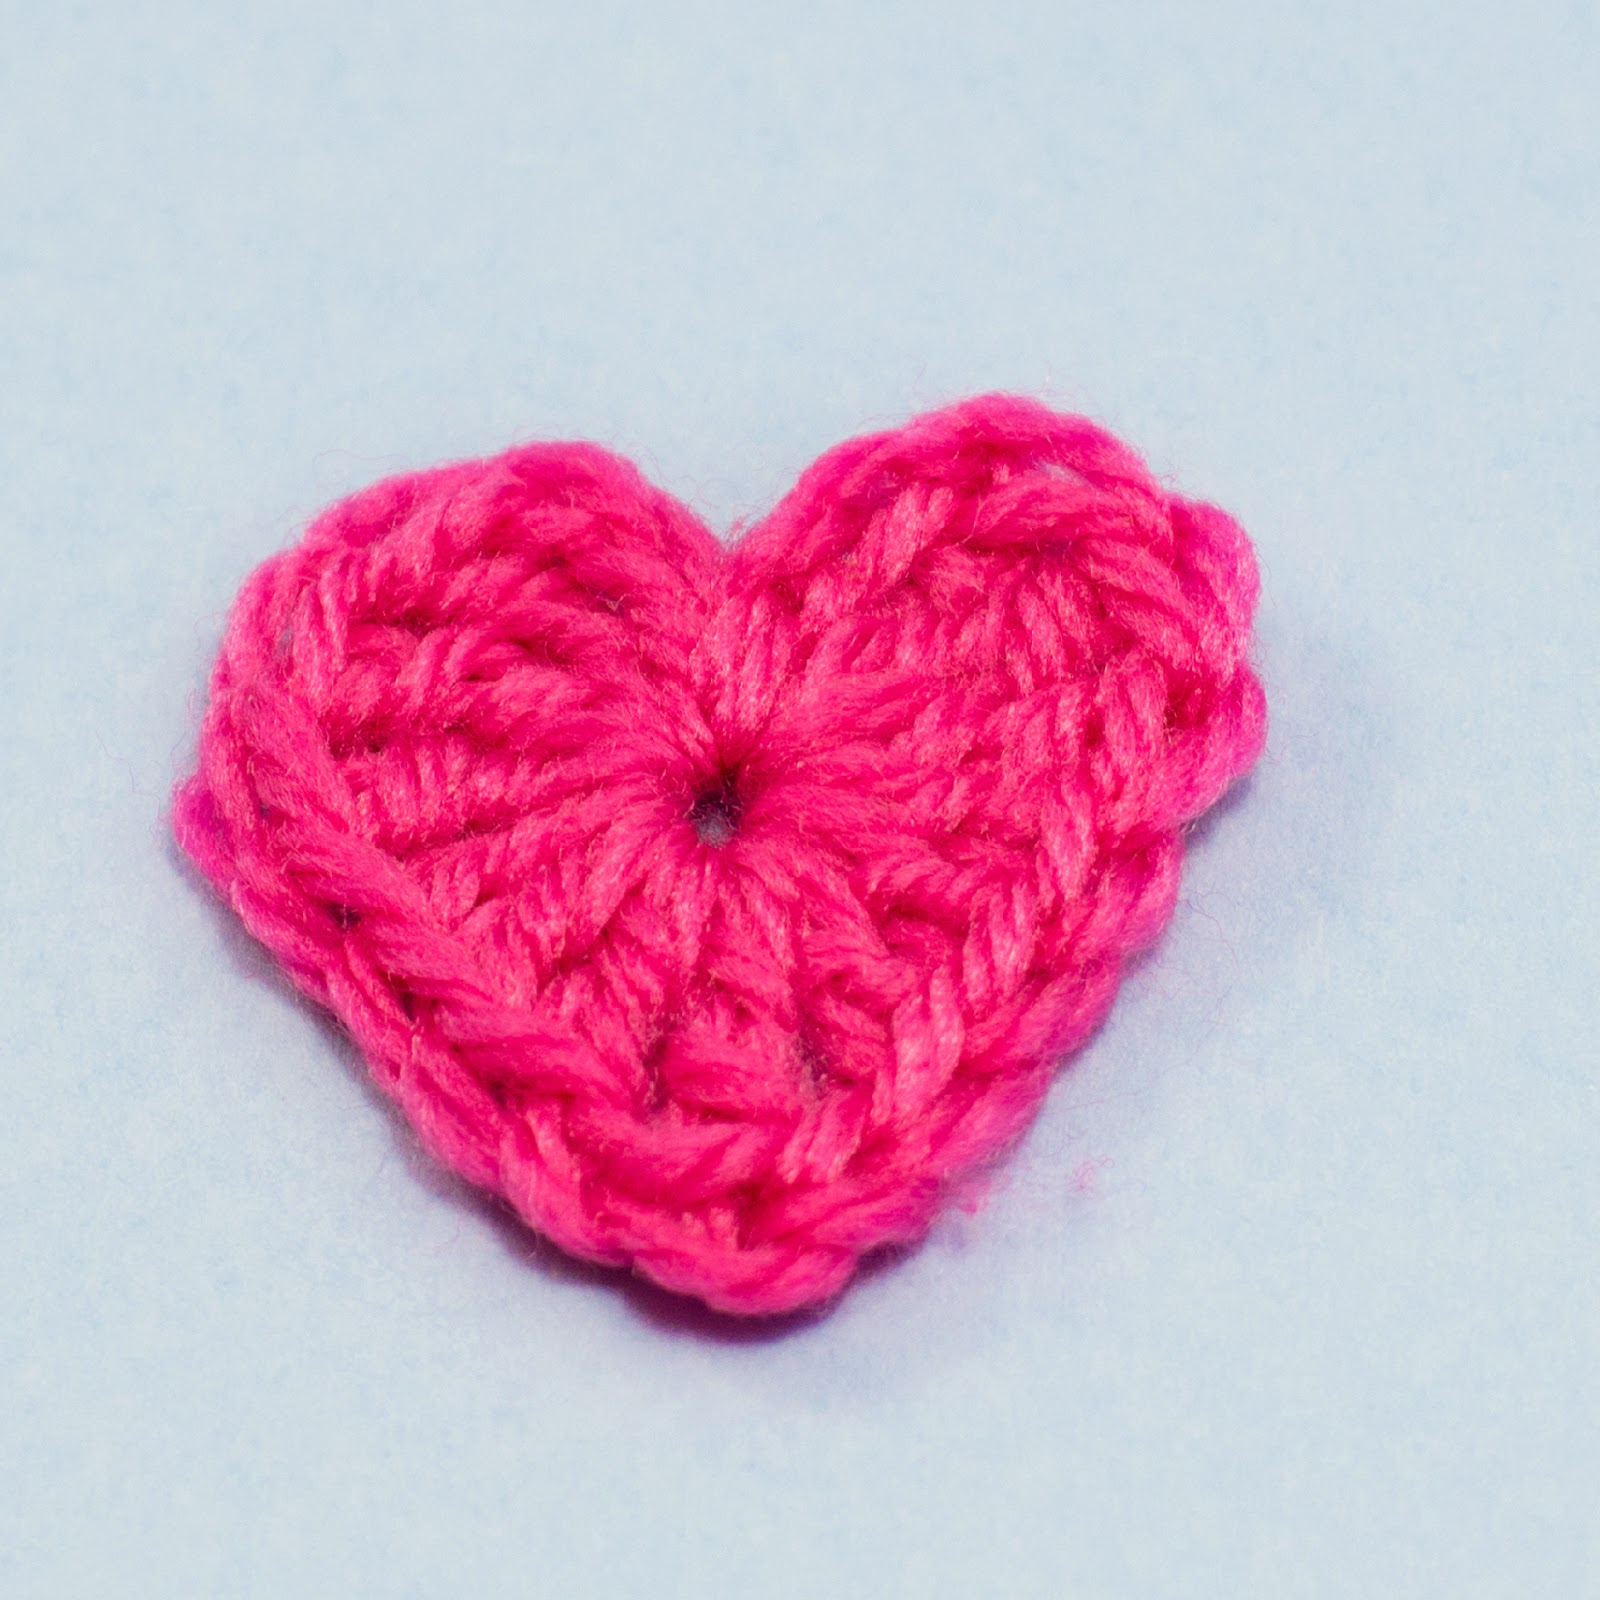 Crochet Patterns Hearts : ... red heart free crochet patterns 755 x 679 363 kb jpeg red heart free